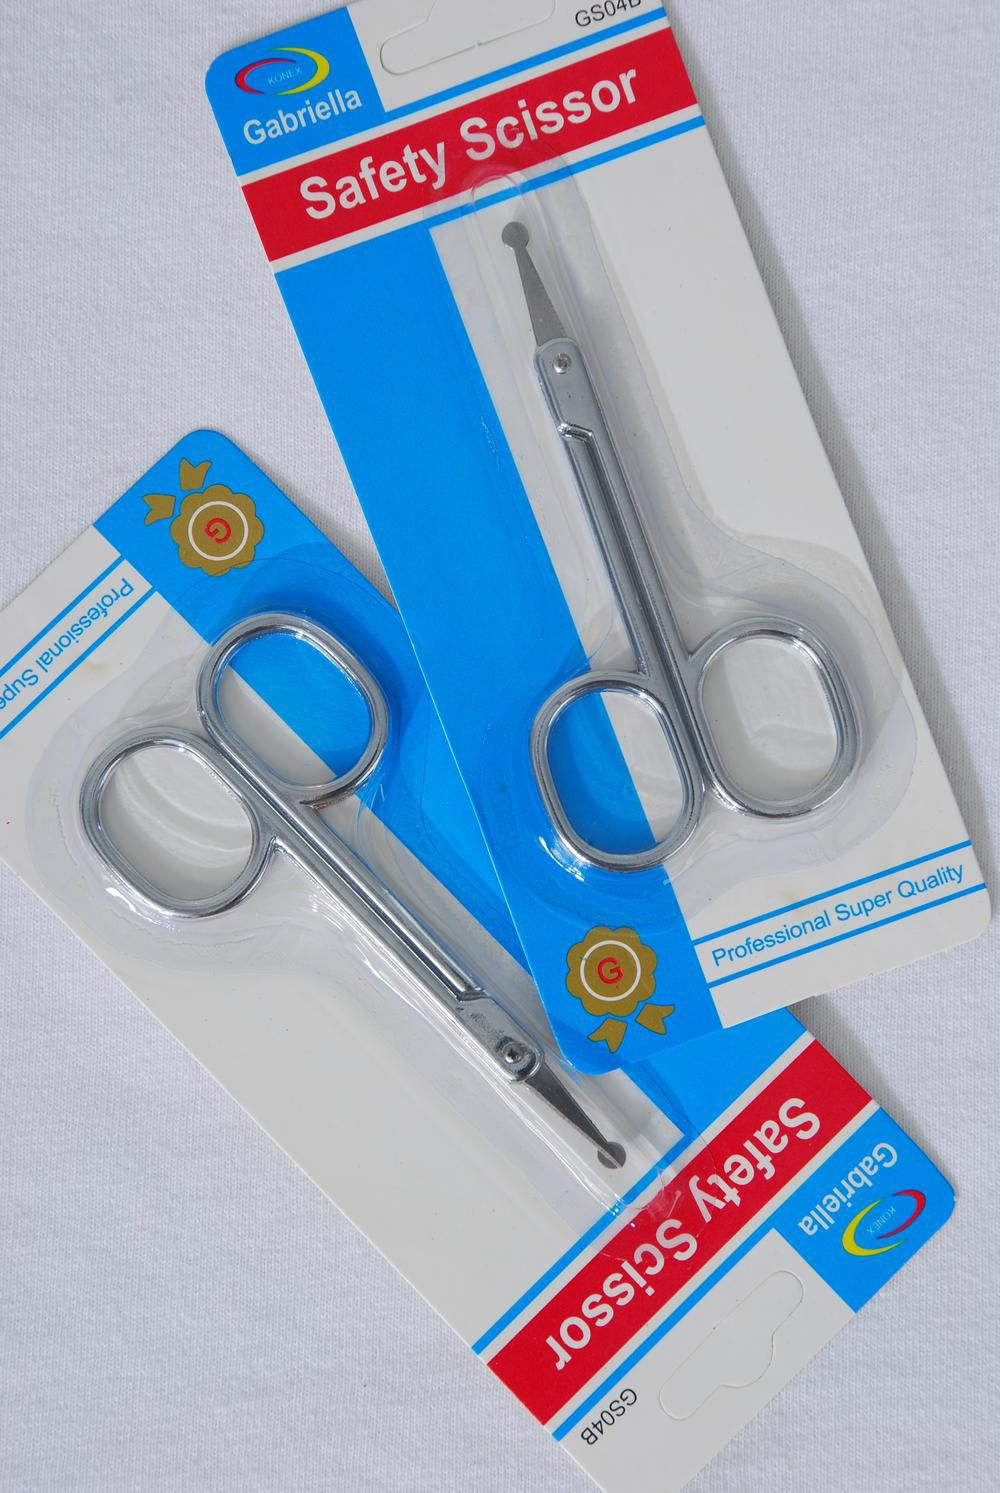 Wholesale Western Jewelry Supplies Safety Scissor Blaster Card Dz Blister Card Upc Code 313